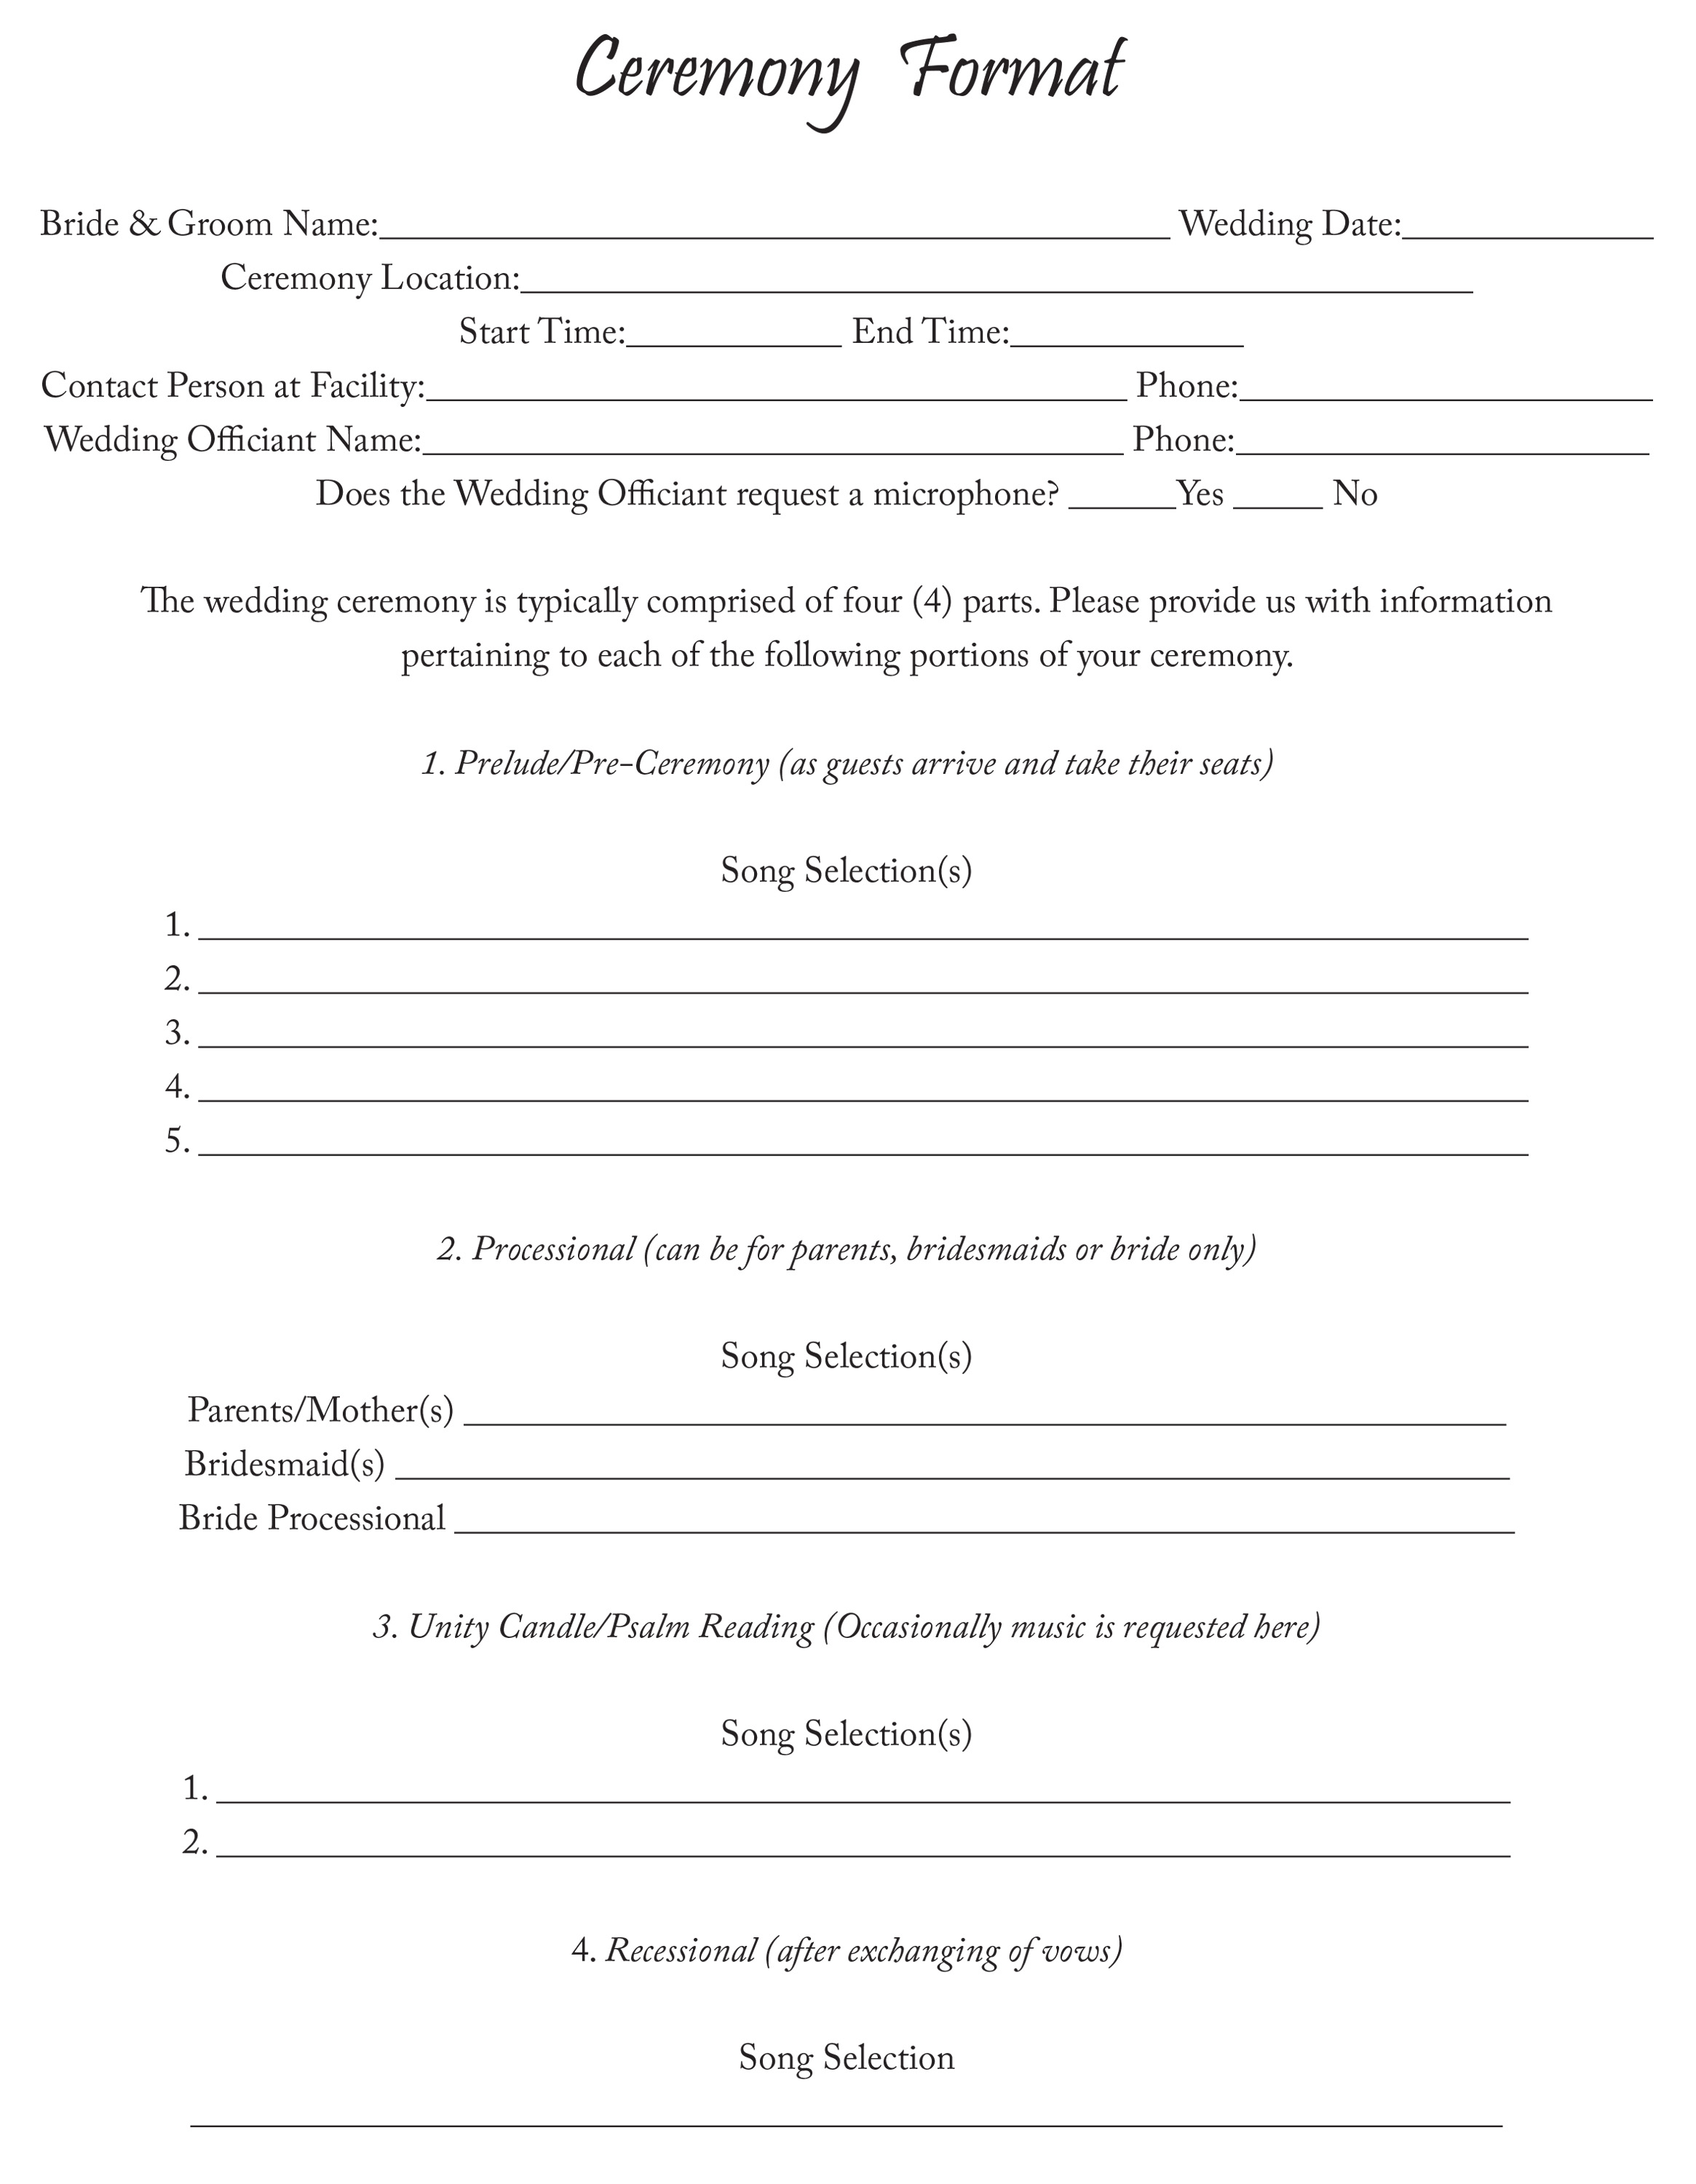 MyDJ Entertainment Ceremony Format Sheet.indd